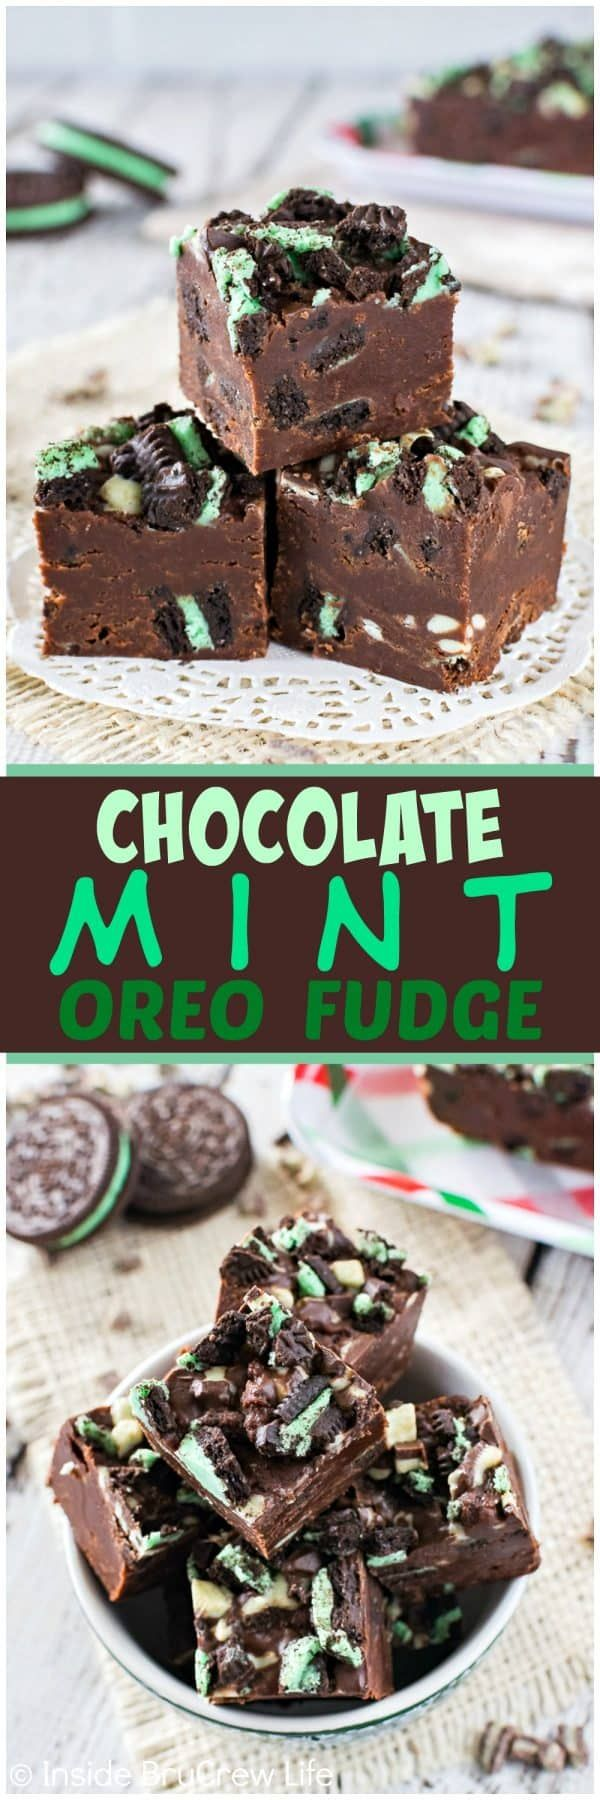 Chocolate Mint Oreo Fudge - these little creamy squares of mint fudge are loaded with cookie pieces and mint chips. Easy recipe to make for holiday parties! ~ Inside BruCrew Life